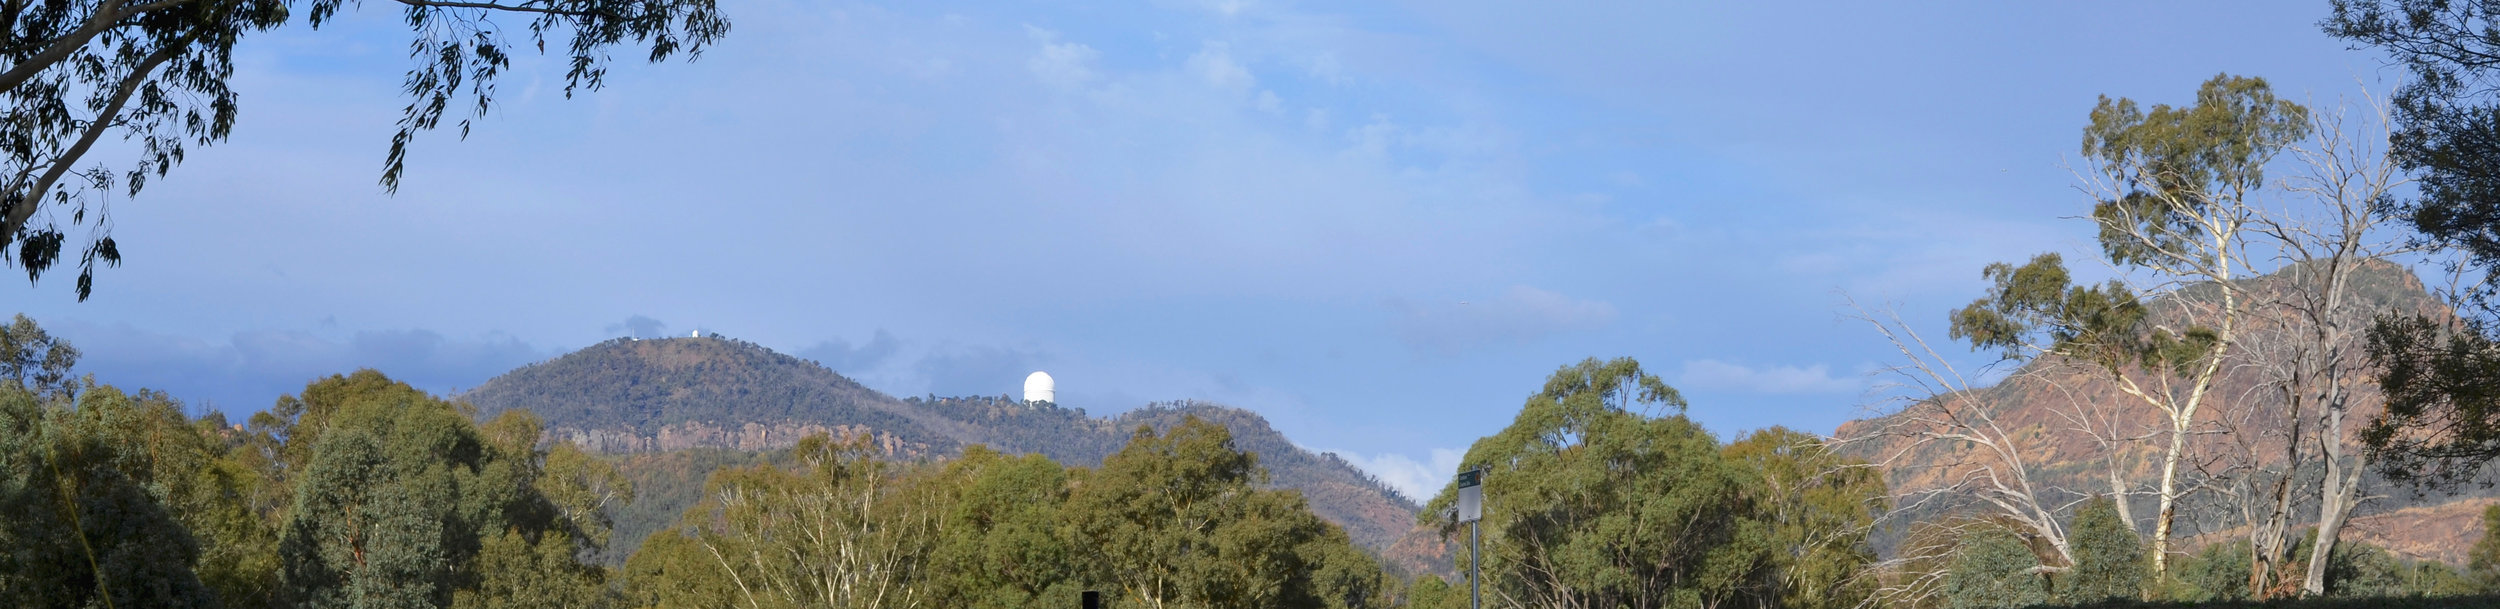 Siding Springs Observatory from my camp